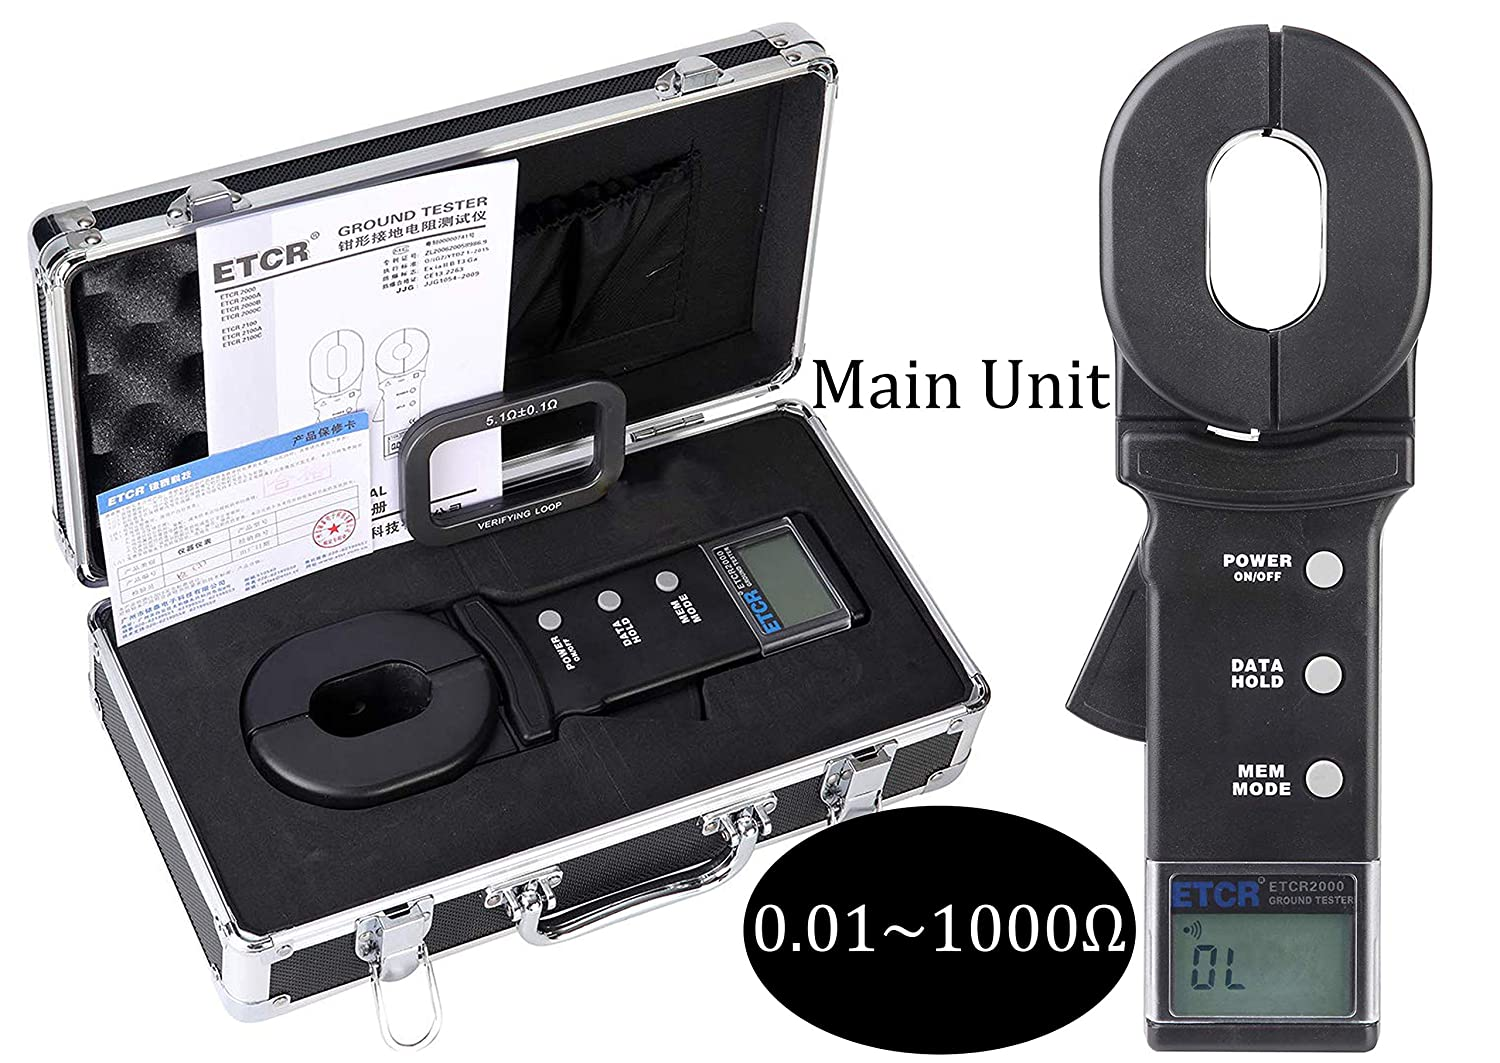 HFBTE Clamp Ground Resistance Tester Meter 0.01~1000Ω ETCR2000 Earth Resistance Tester Loop Resistance Measurement with 99 Sets Data Storage Function Alarm System